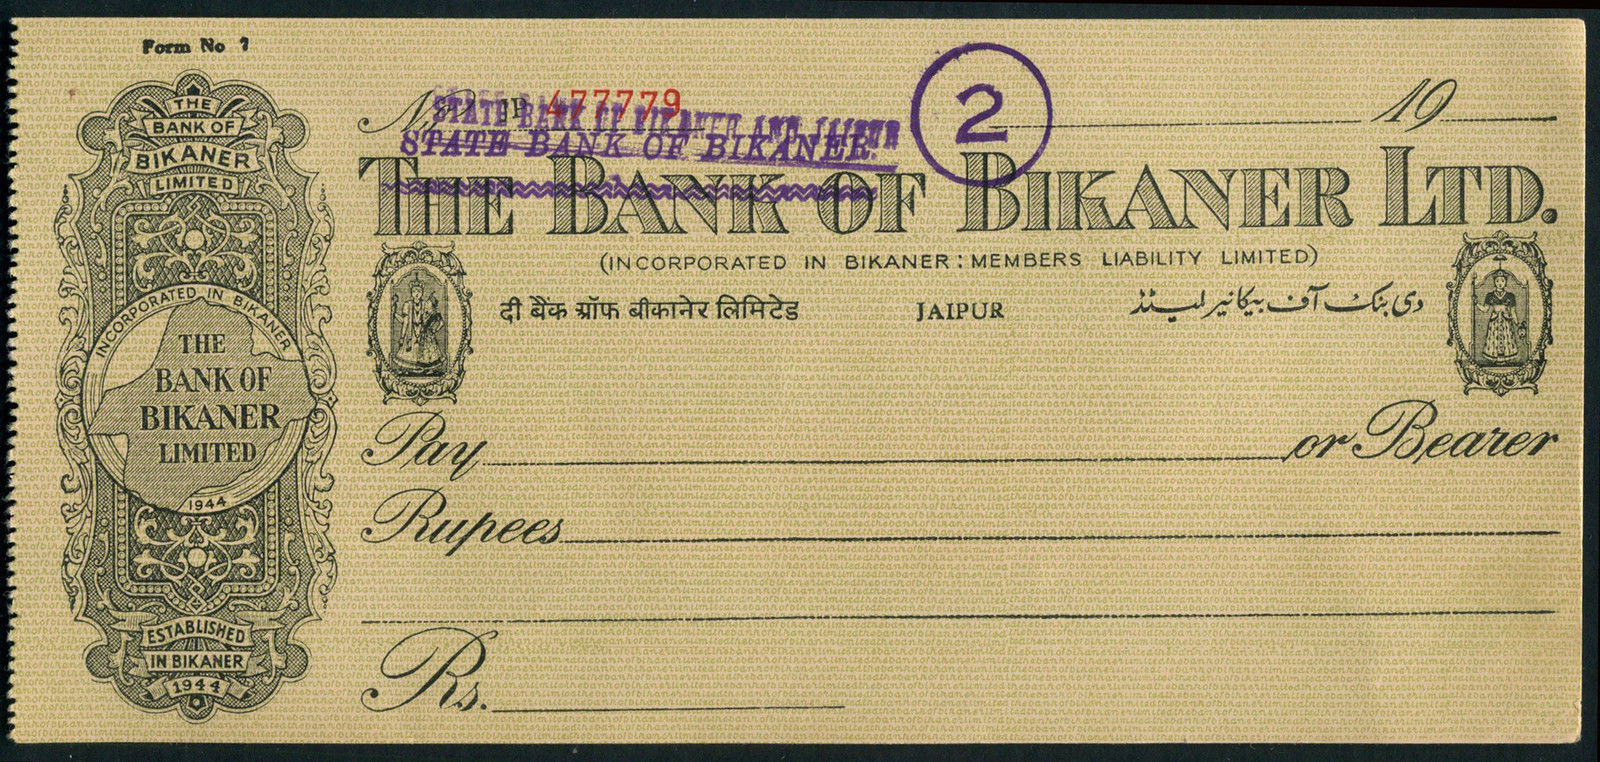 Bank of Bikaner Cheque